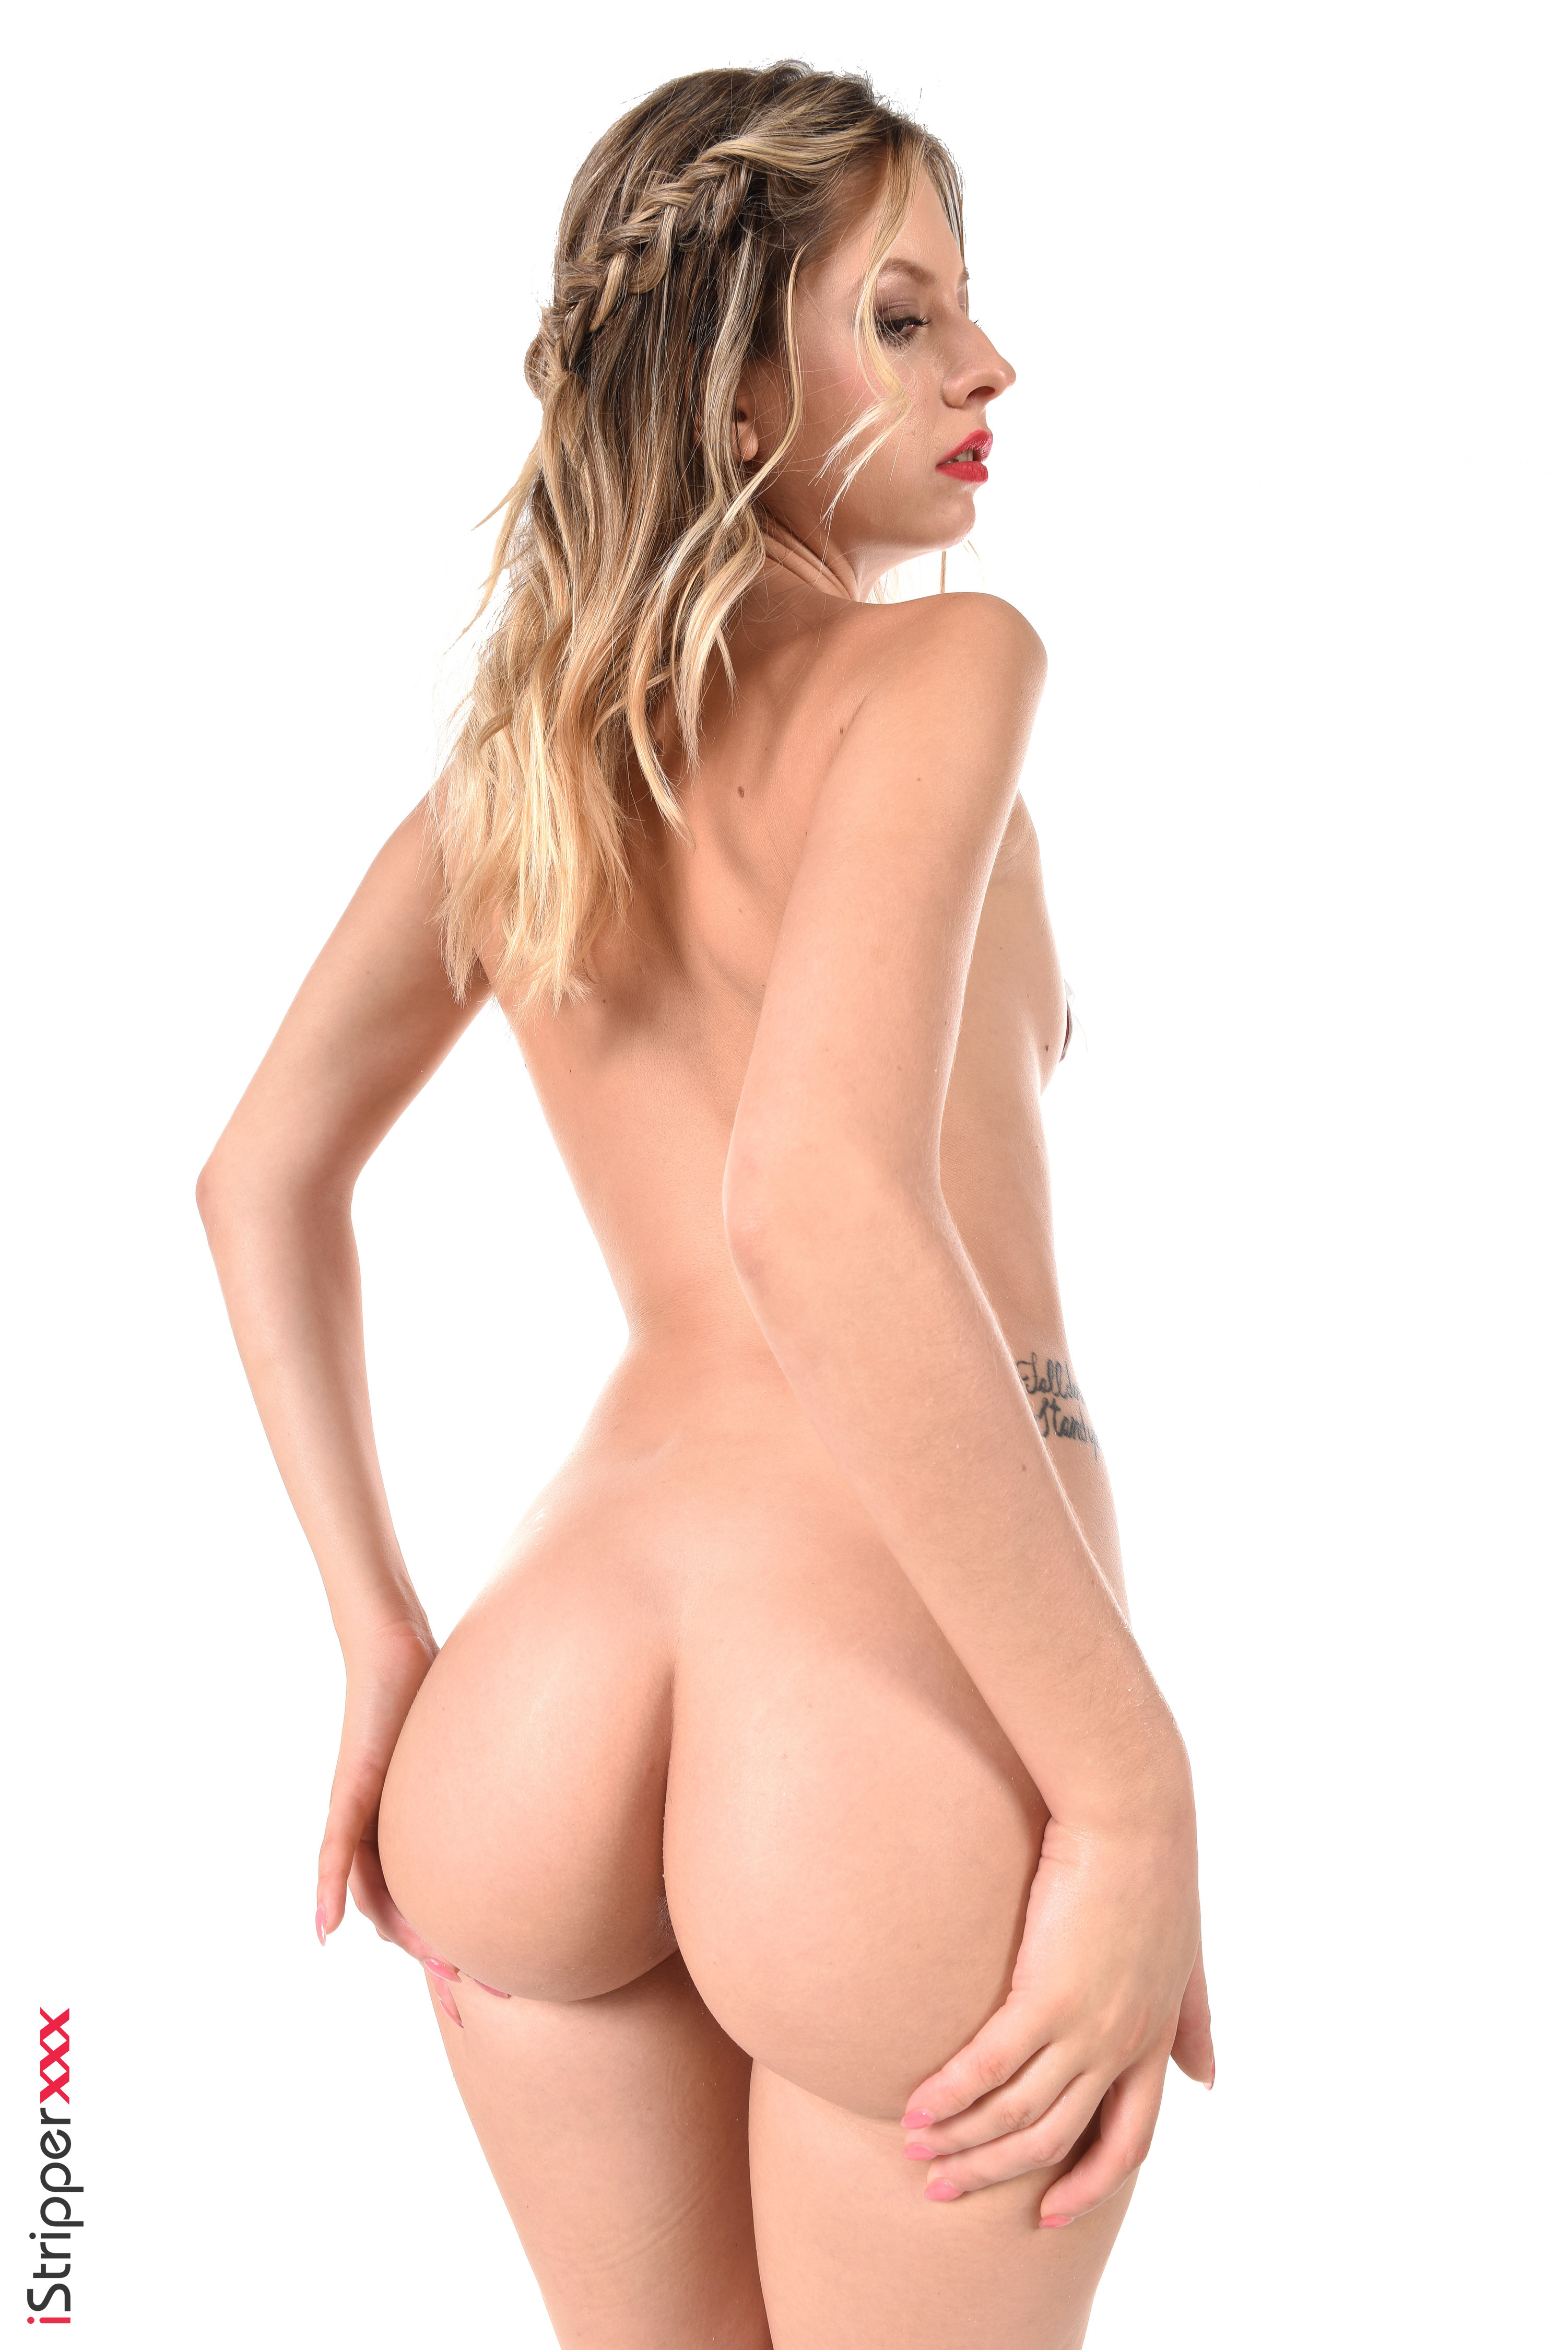 naked hot wallpapers